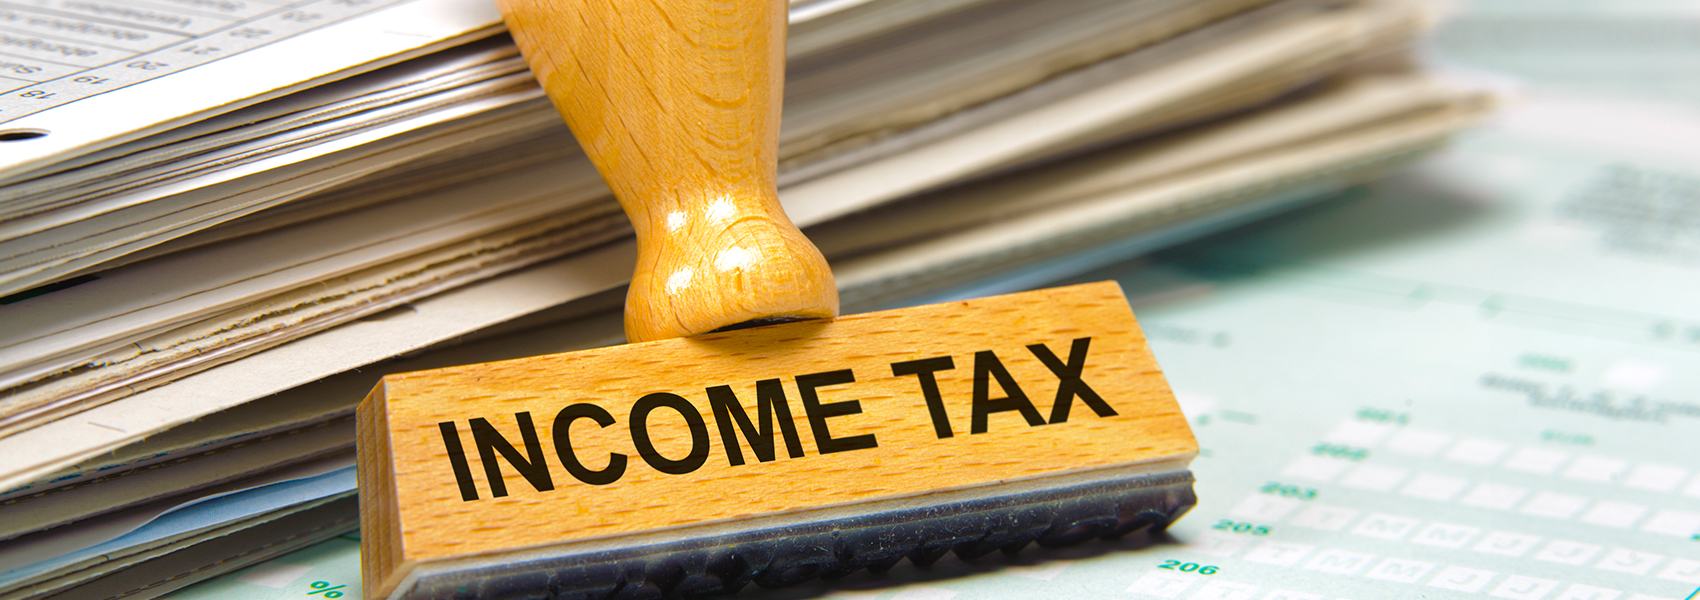 income-tax-filing-for-business-sg